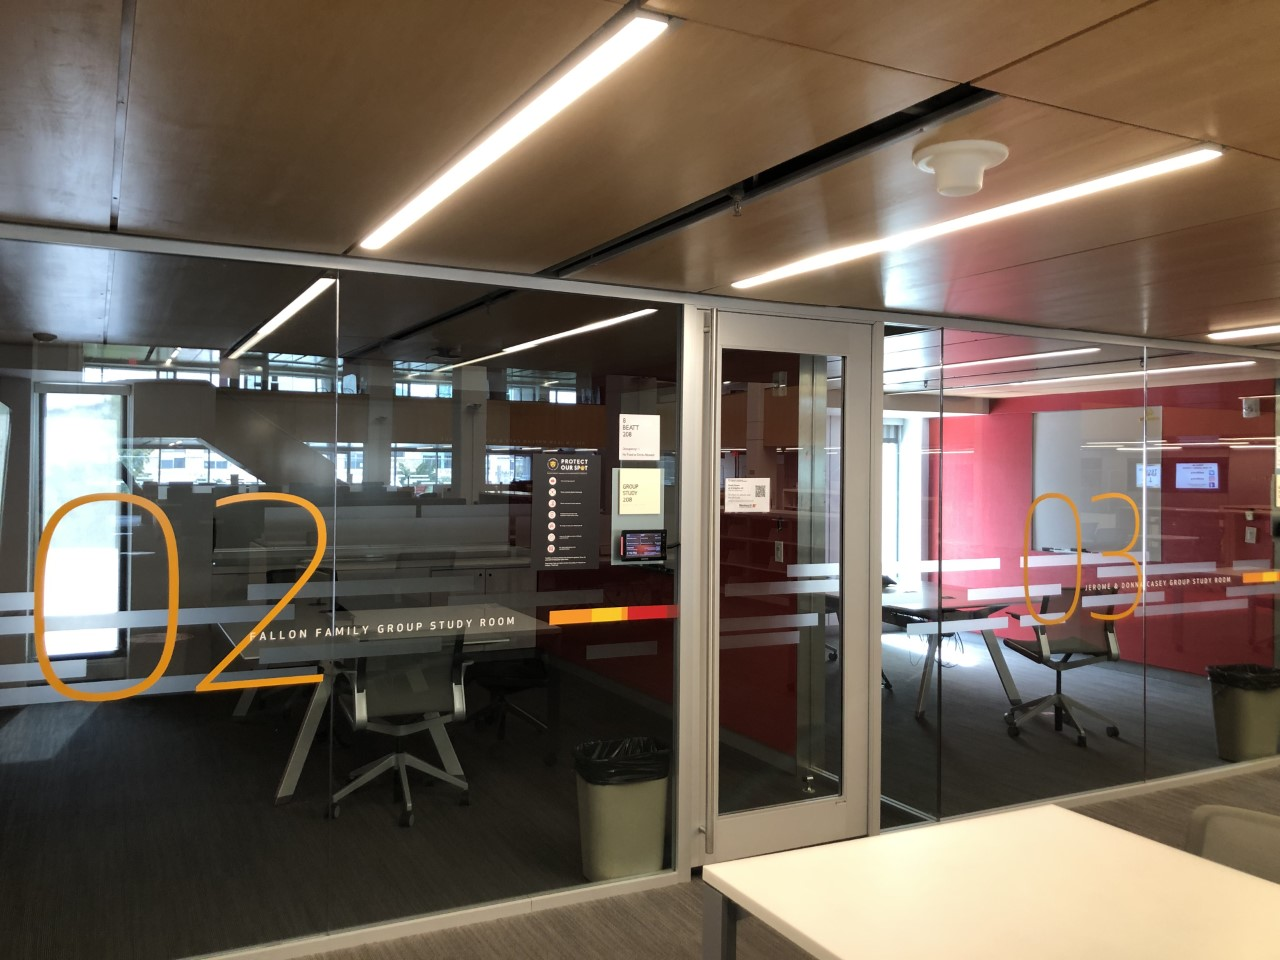 Library space; main floor study rooms